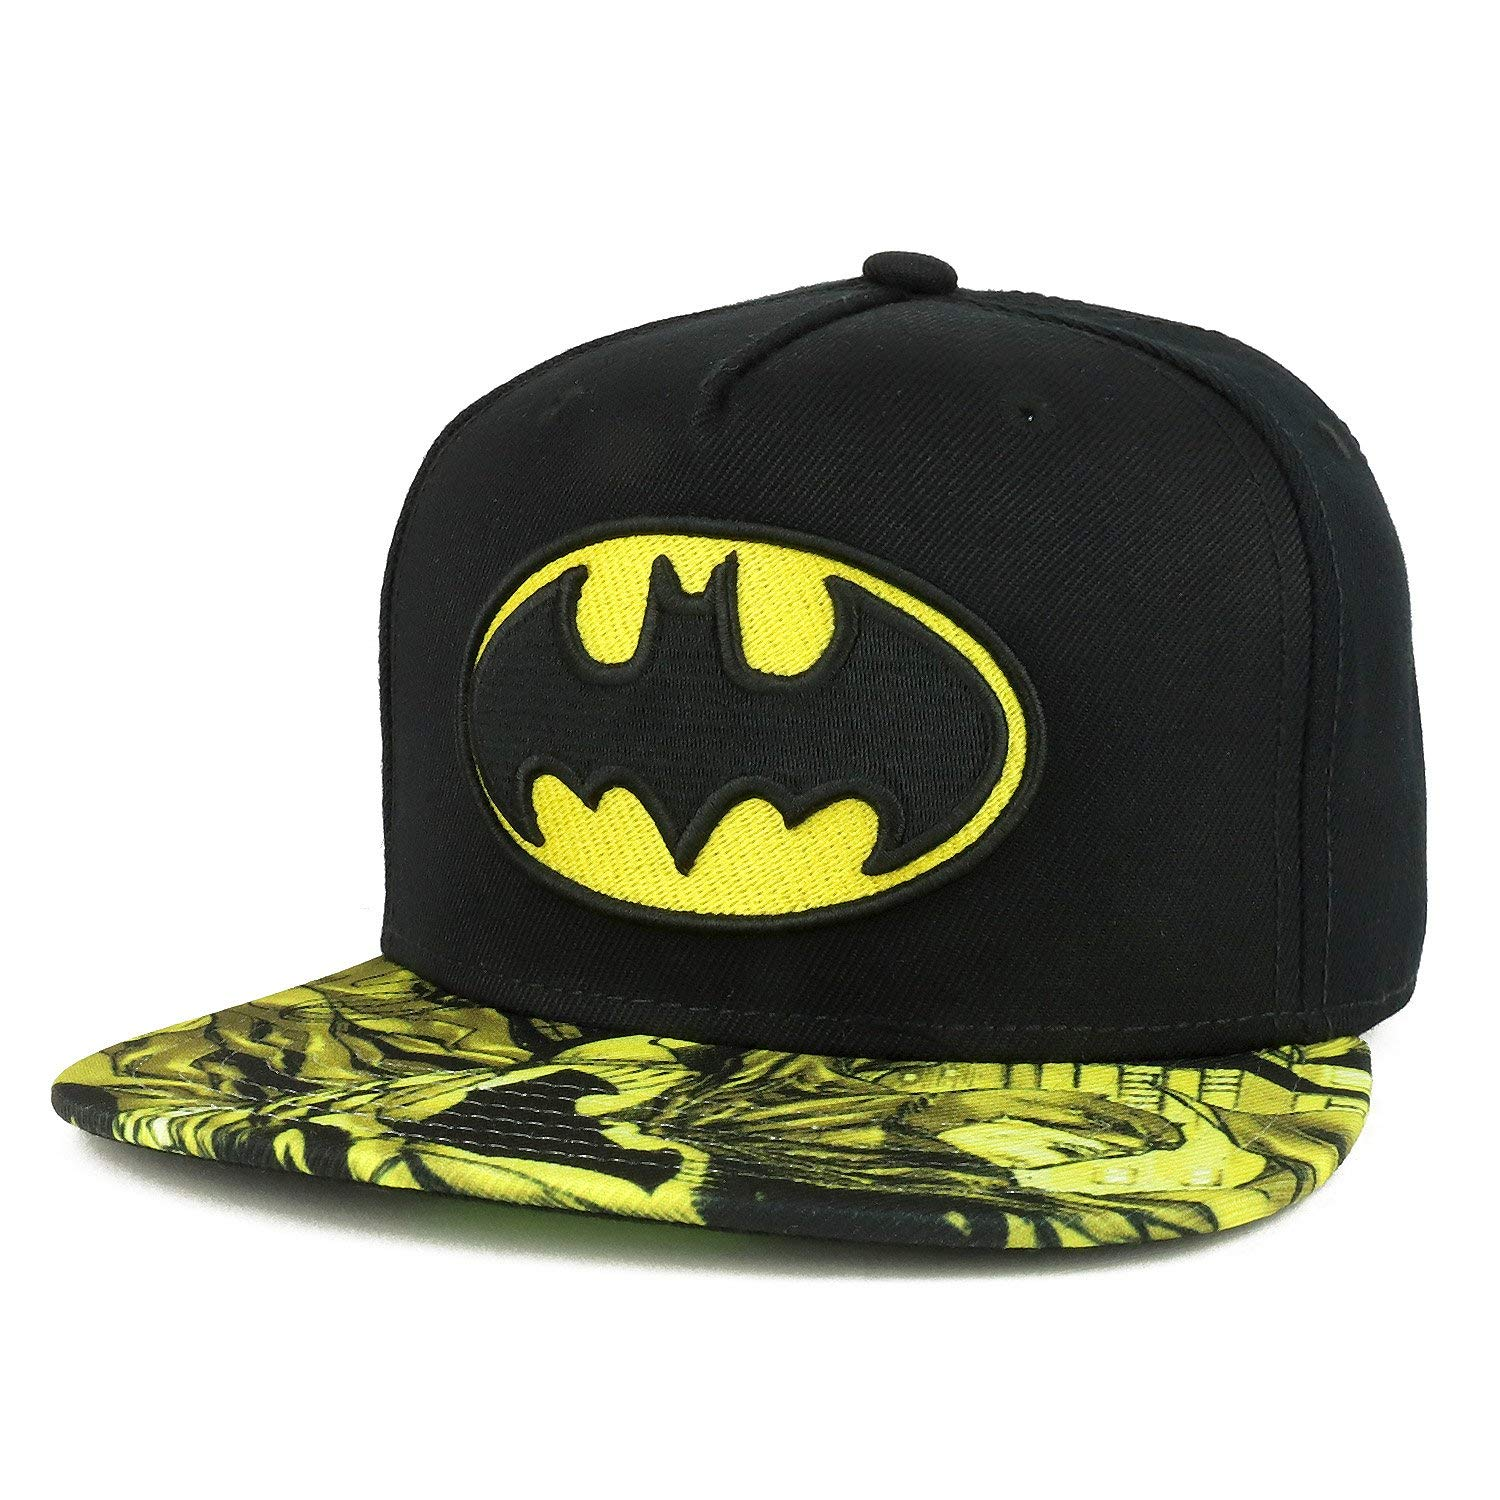 ea74540d6125f Get Quotations · Armycrew Youth Size Kid s Batman Logo Design Embroidered  Flatbill Snapback Cap